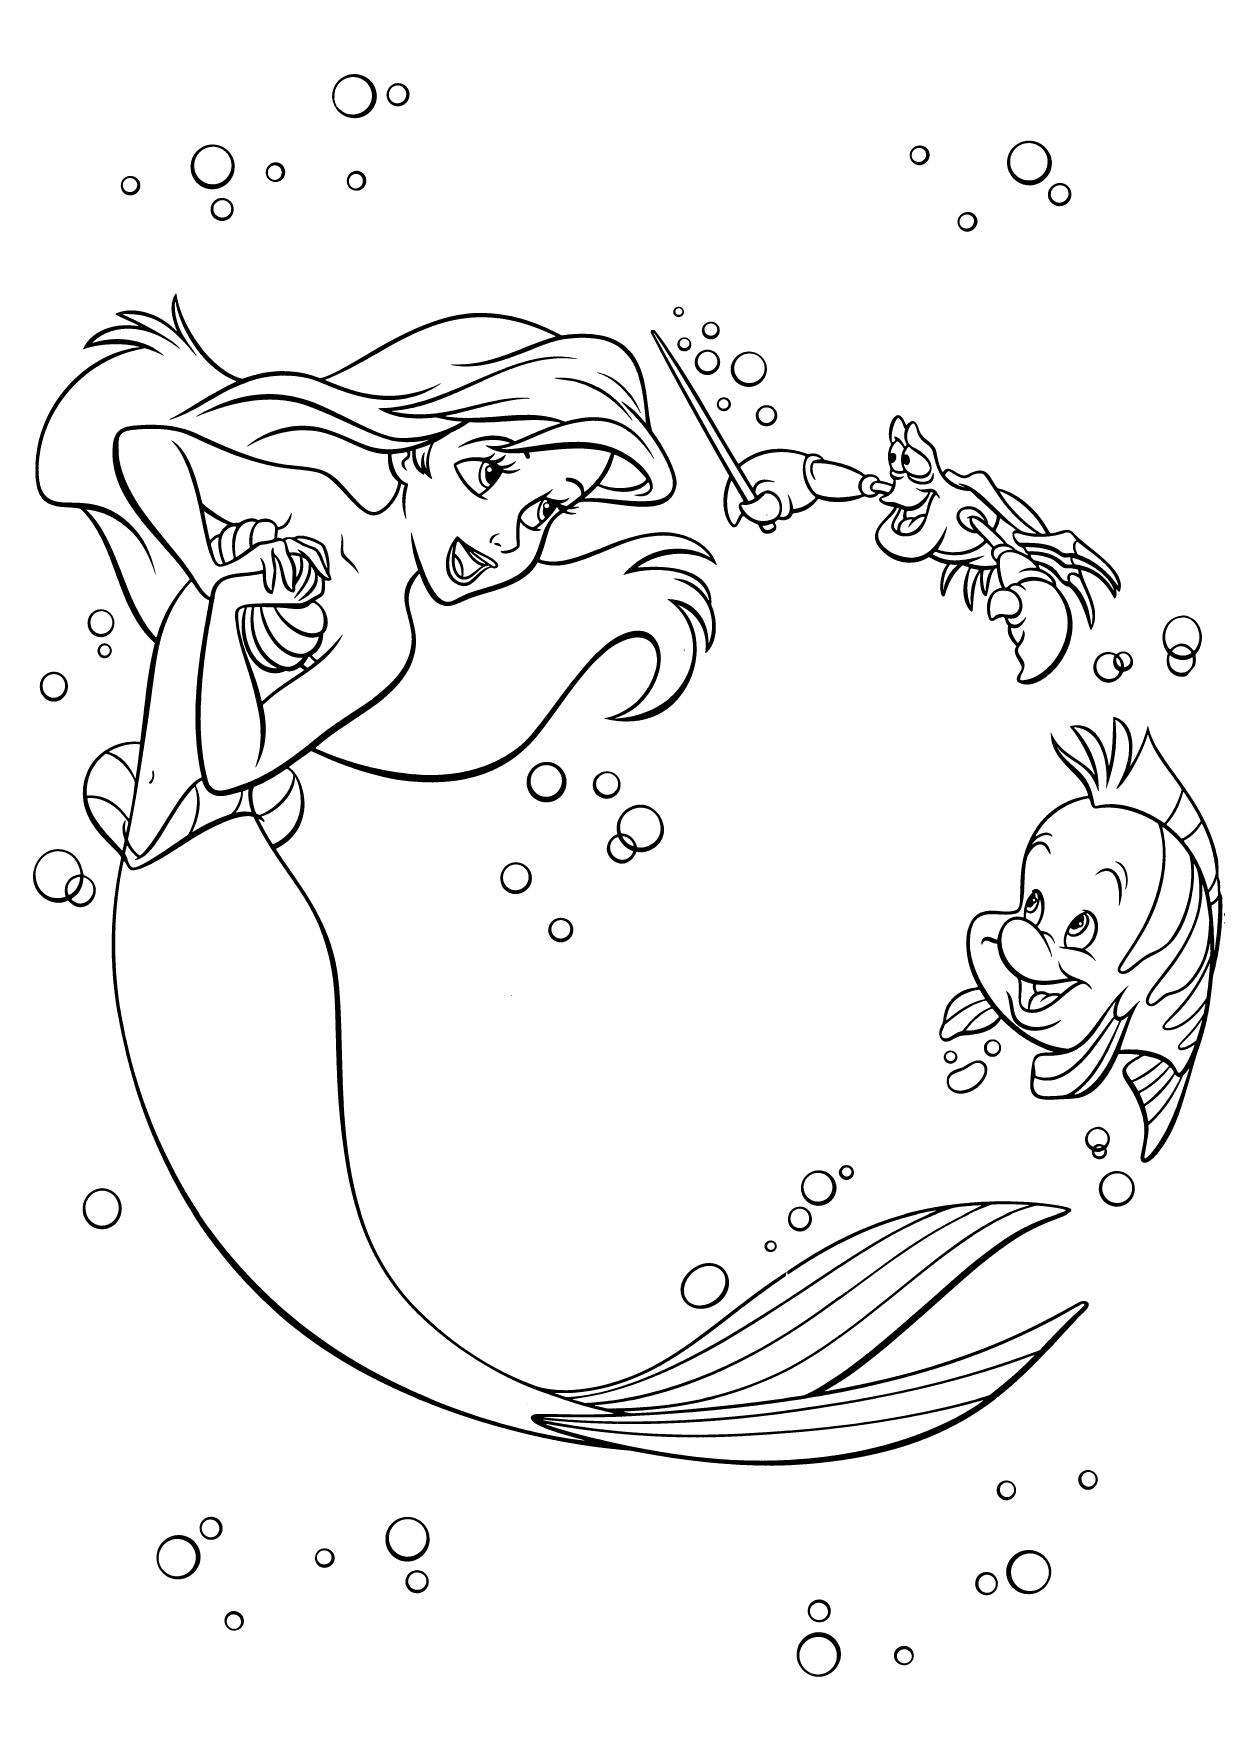 Disney Coloring Book Pdf Only Coloring Pages Princess Coloring Pages Pdf Free Coloring Sheets